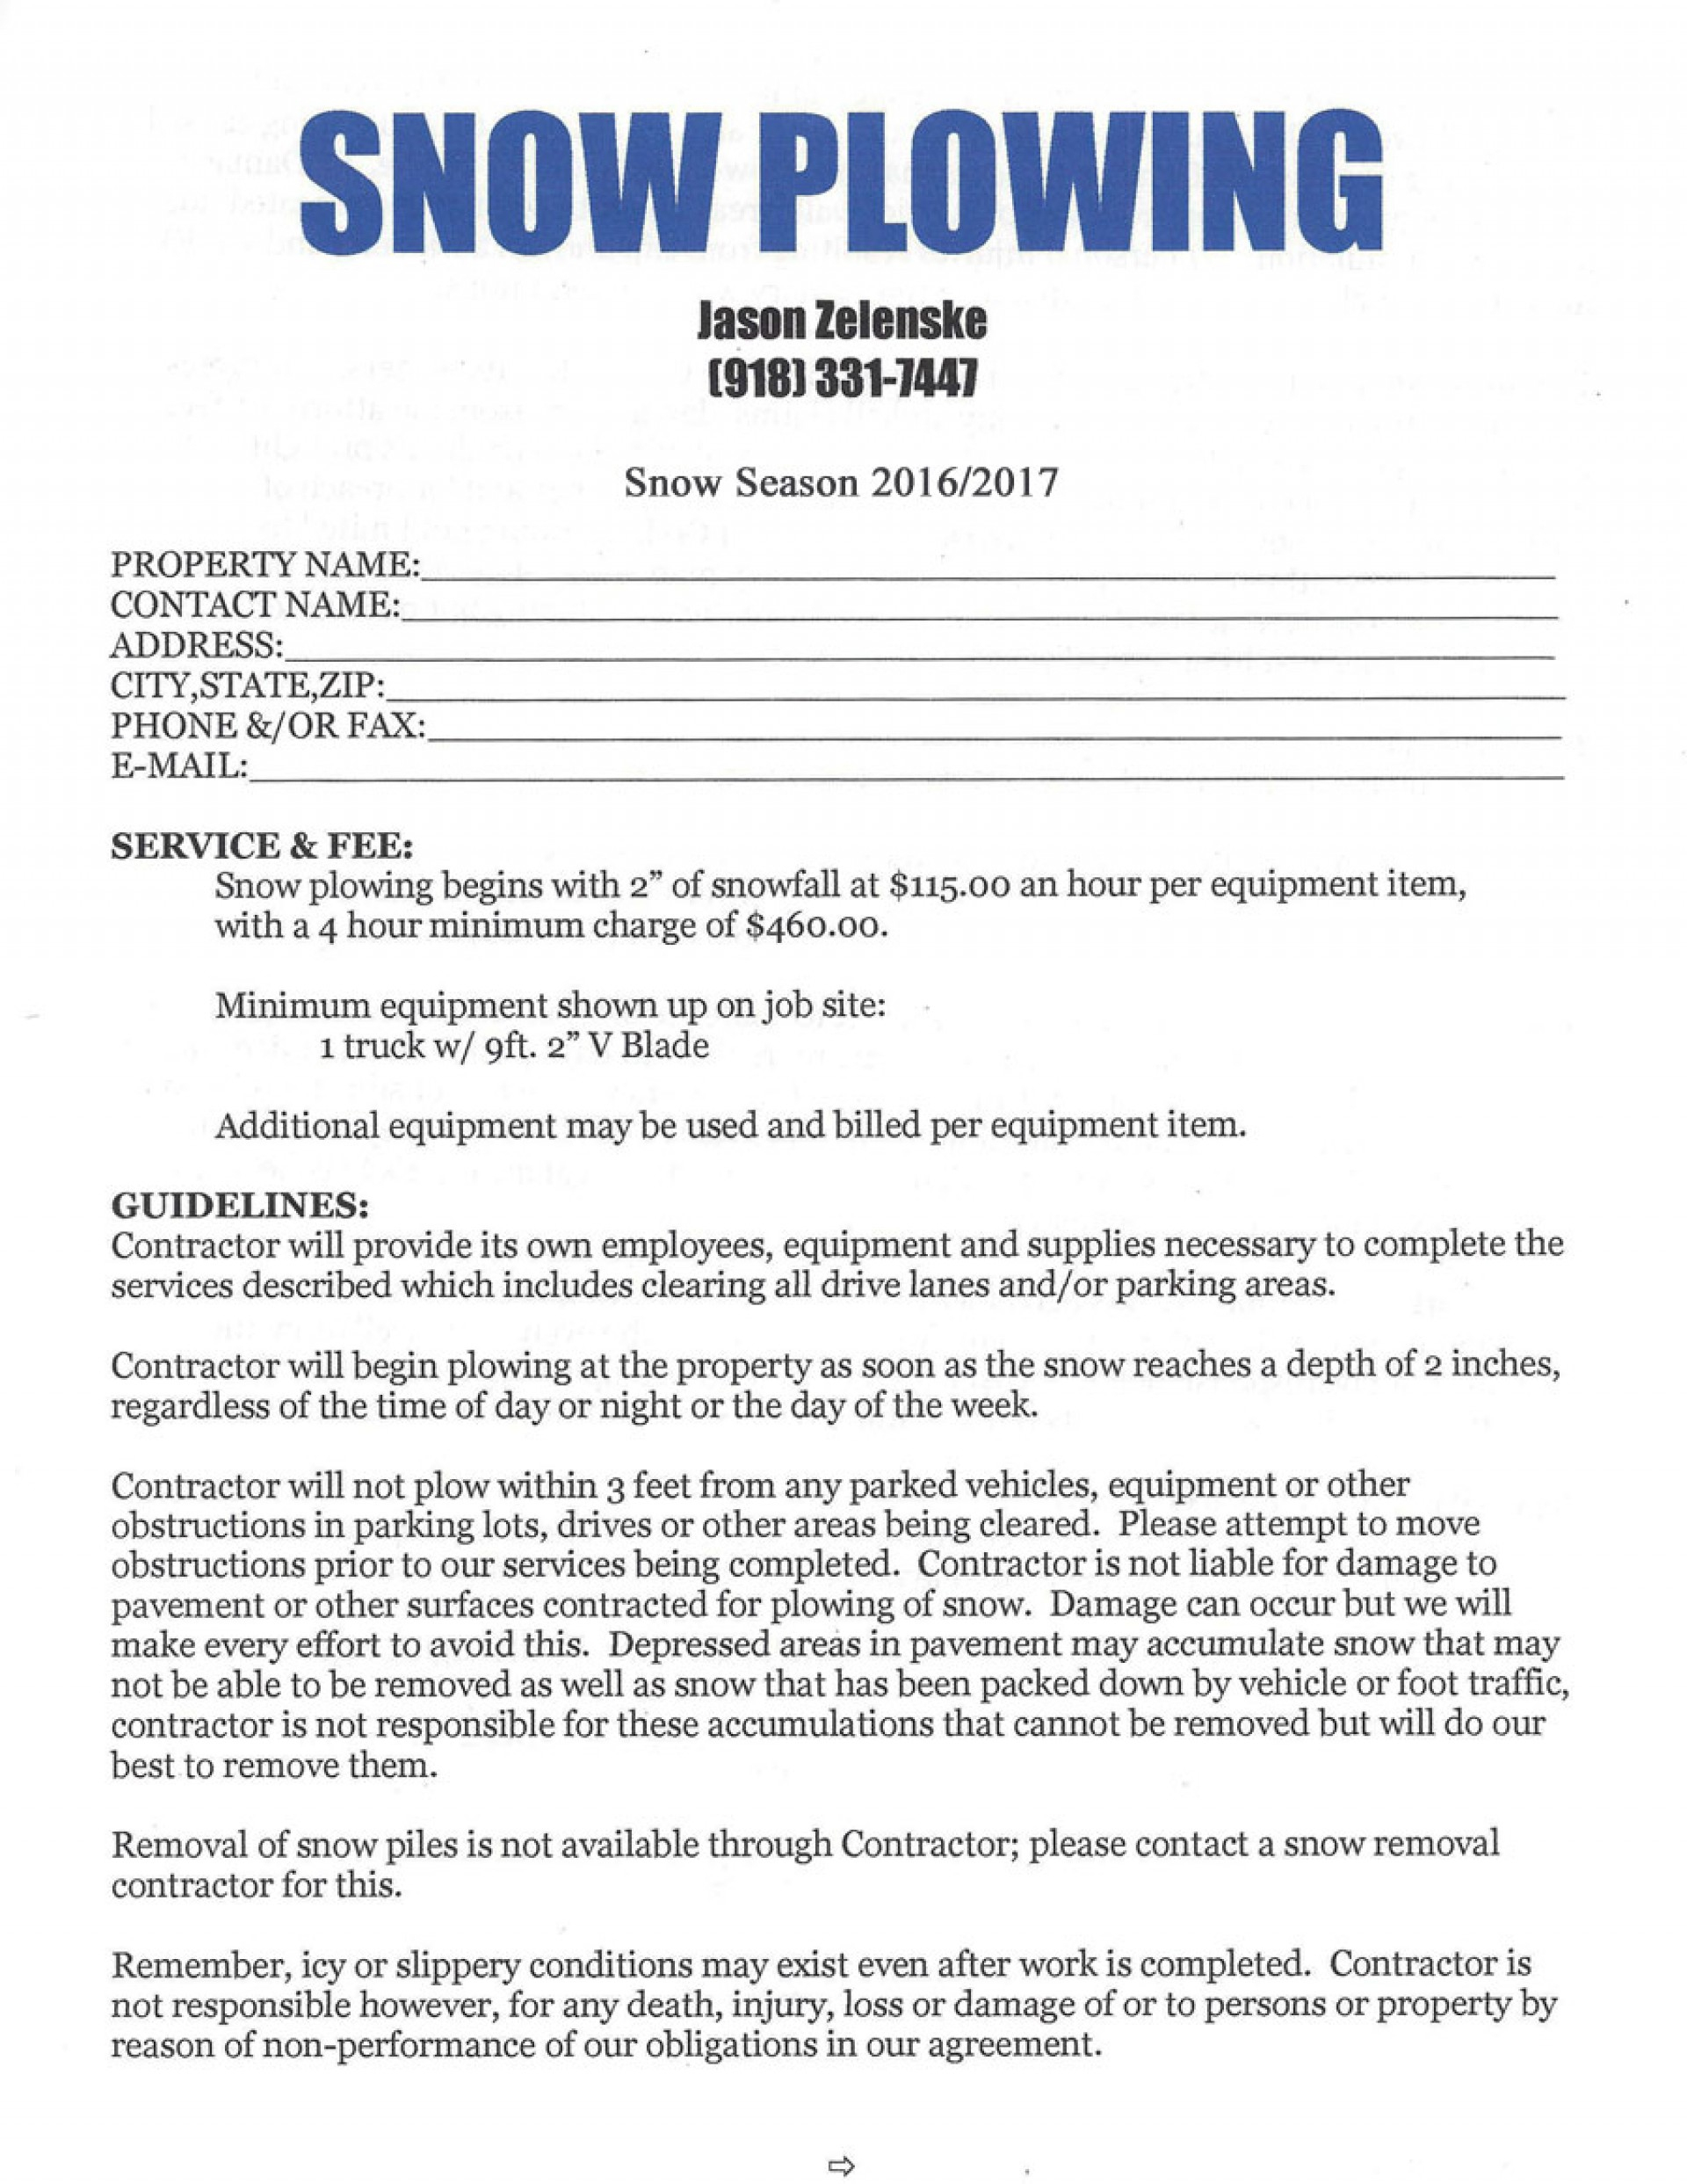 Impressive Snow Removal Contract Templates ~ Ulyssesroom - Free Printable Snow Removal Contract